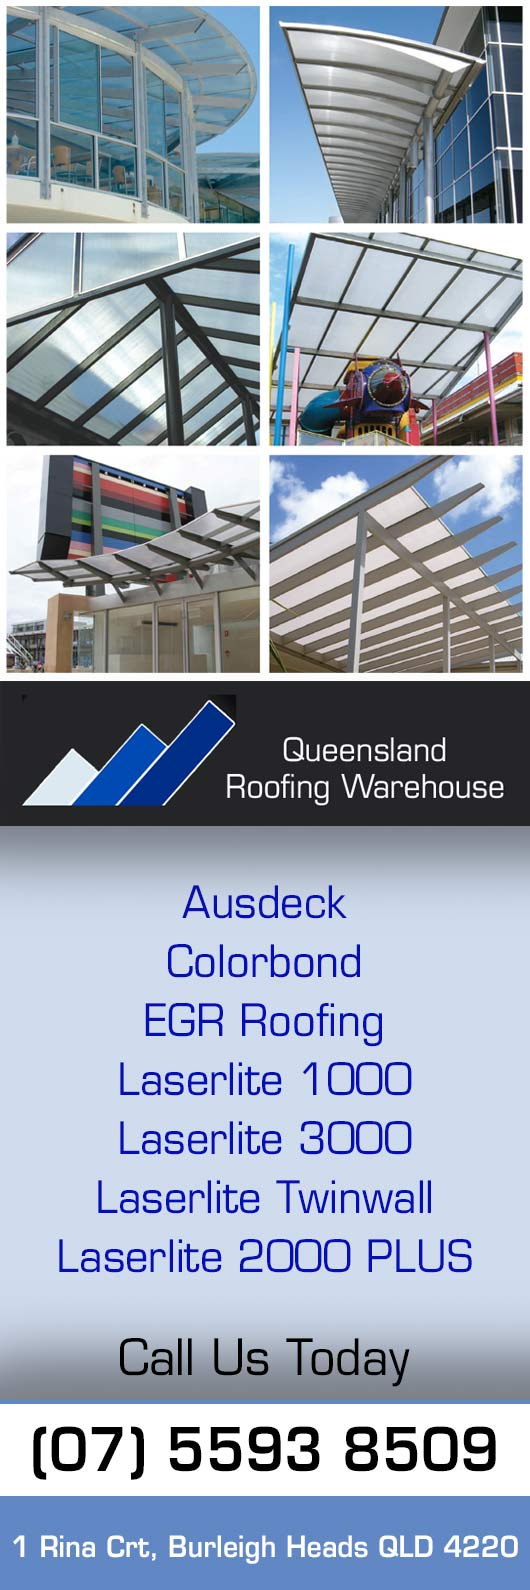 Queensland roofing warehouse roofing materials burleigh heads patio roofing solutioingenieria Images